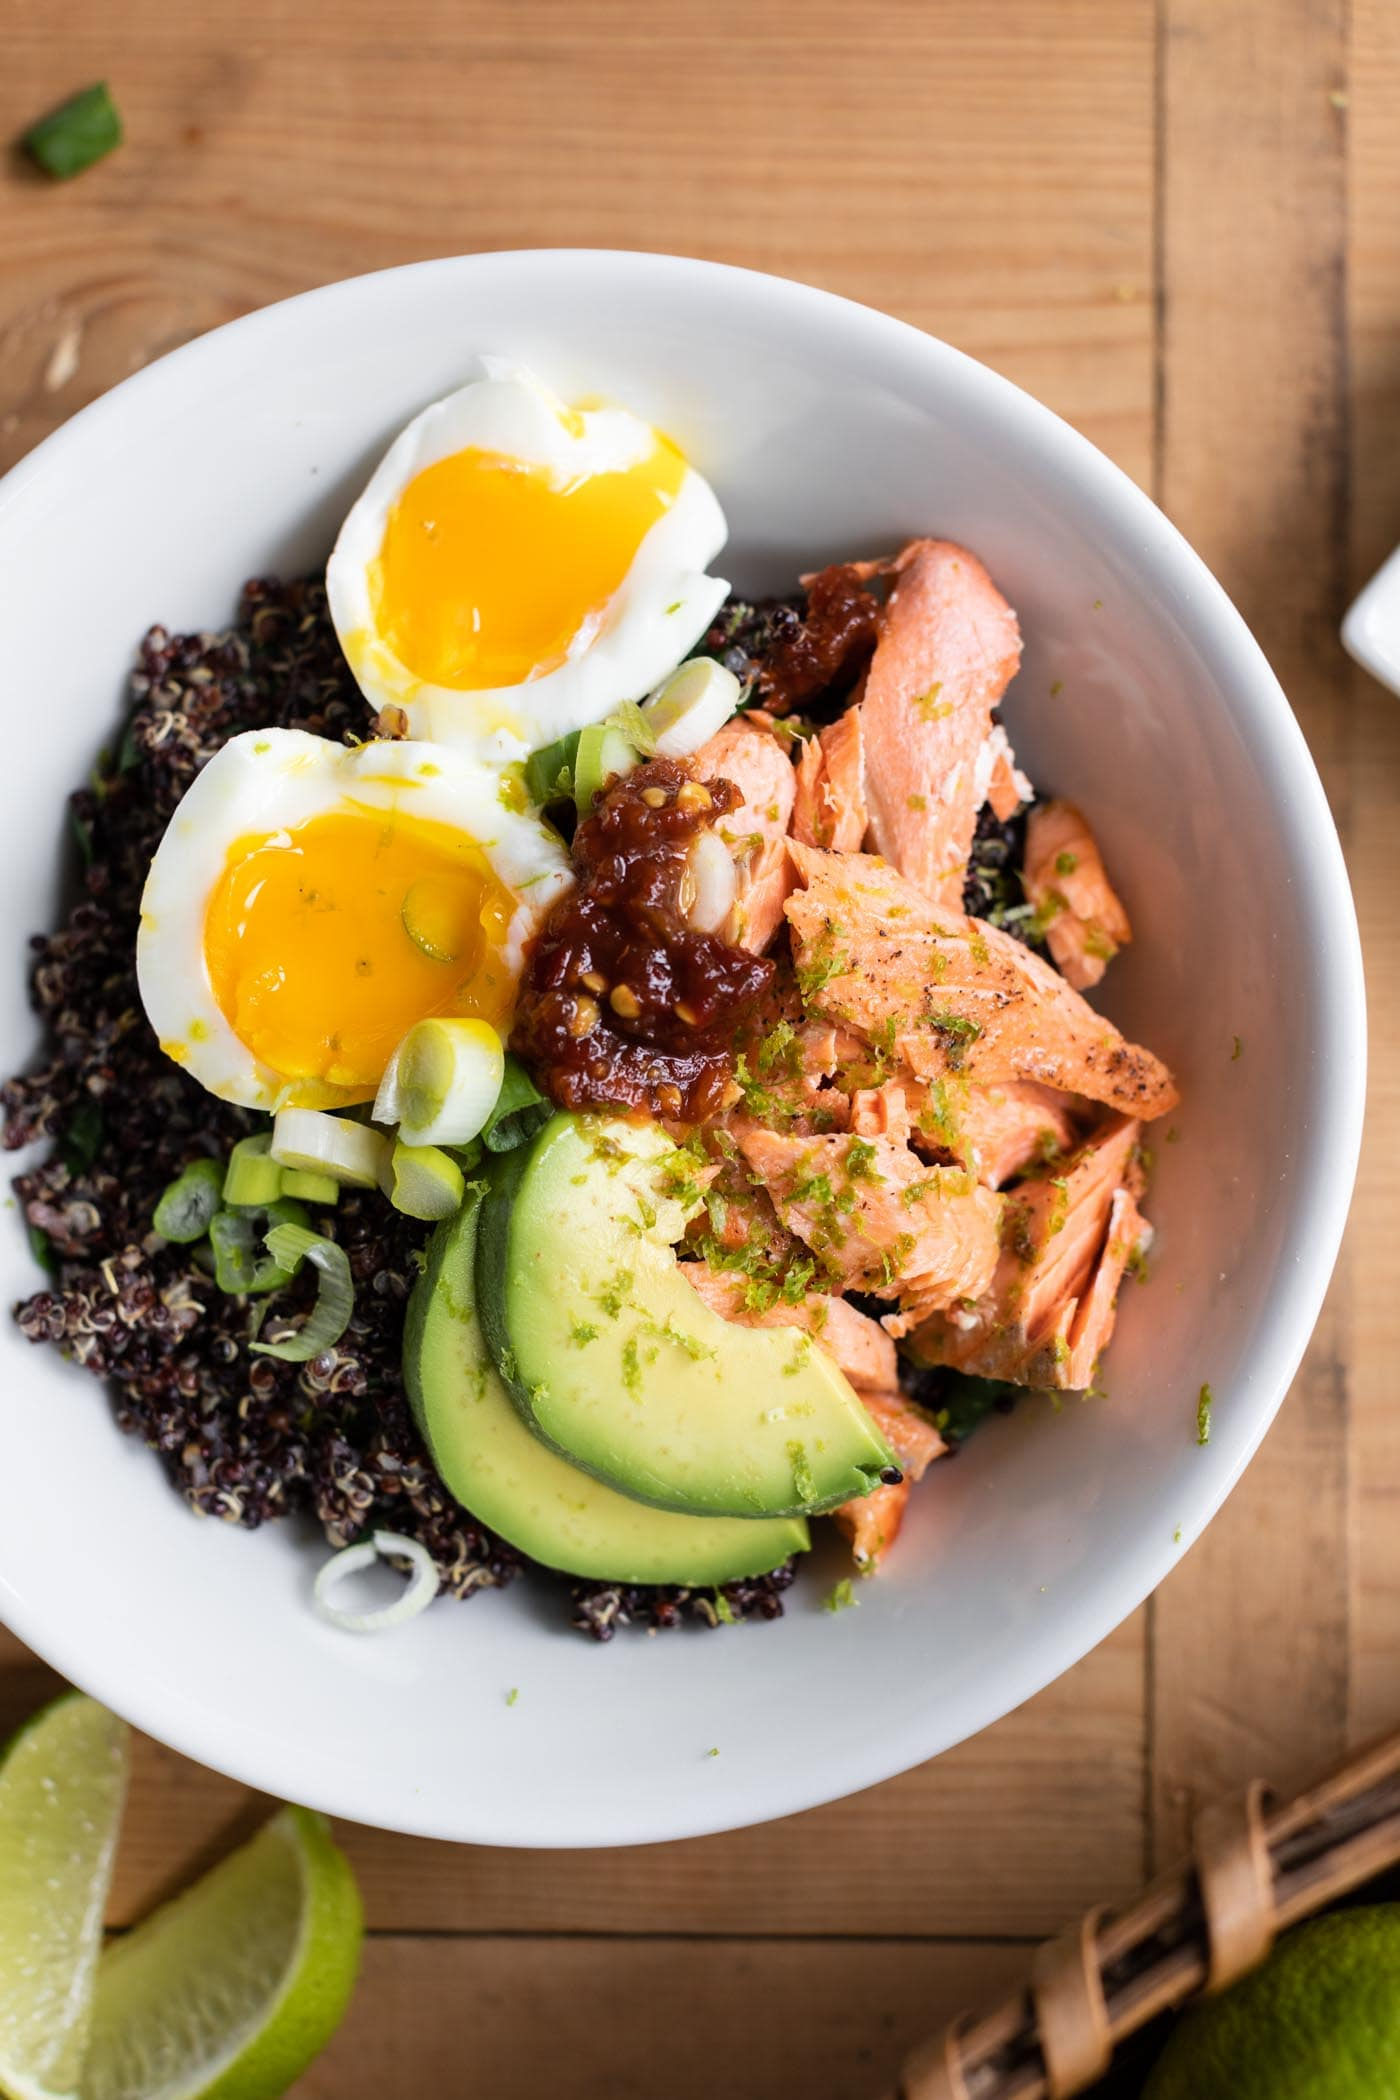 Top down view of salmon bowl topped with sliced egg and avocado all on wood surface